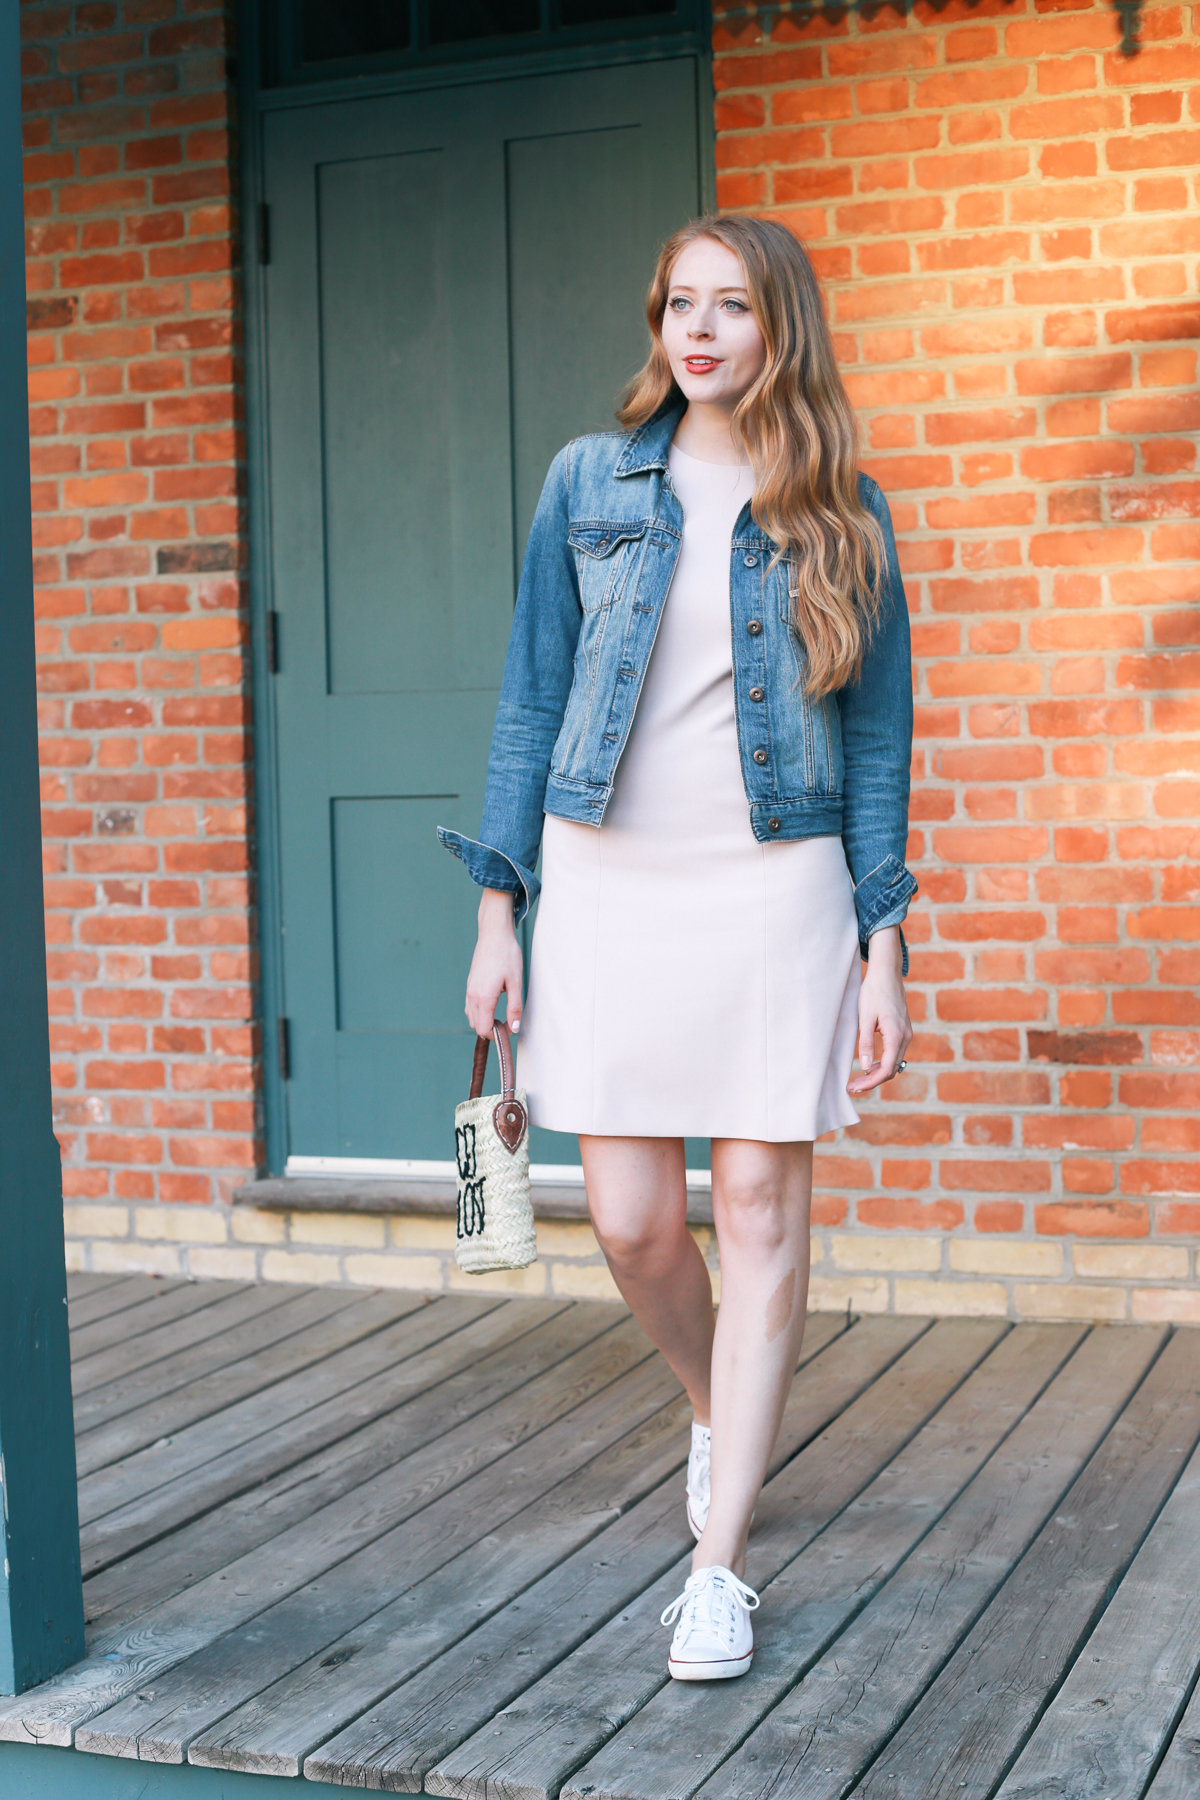 Grayes Toronto fashion brand work outfits (2 of 12)